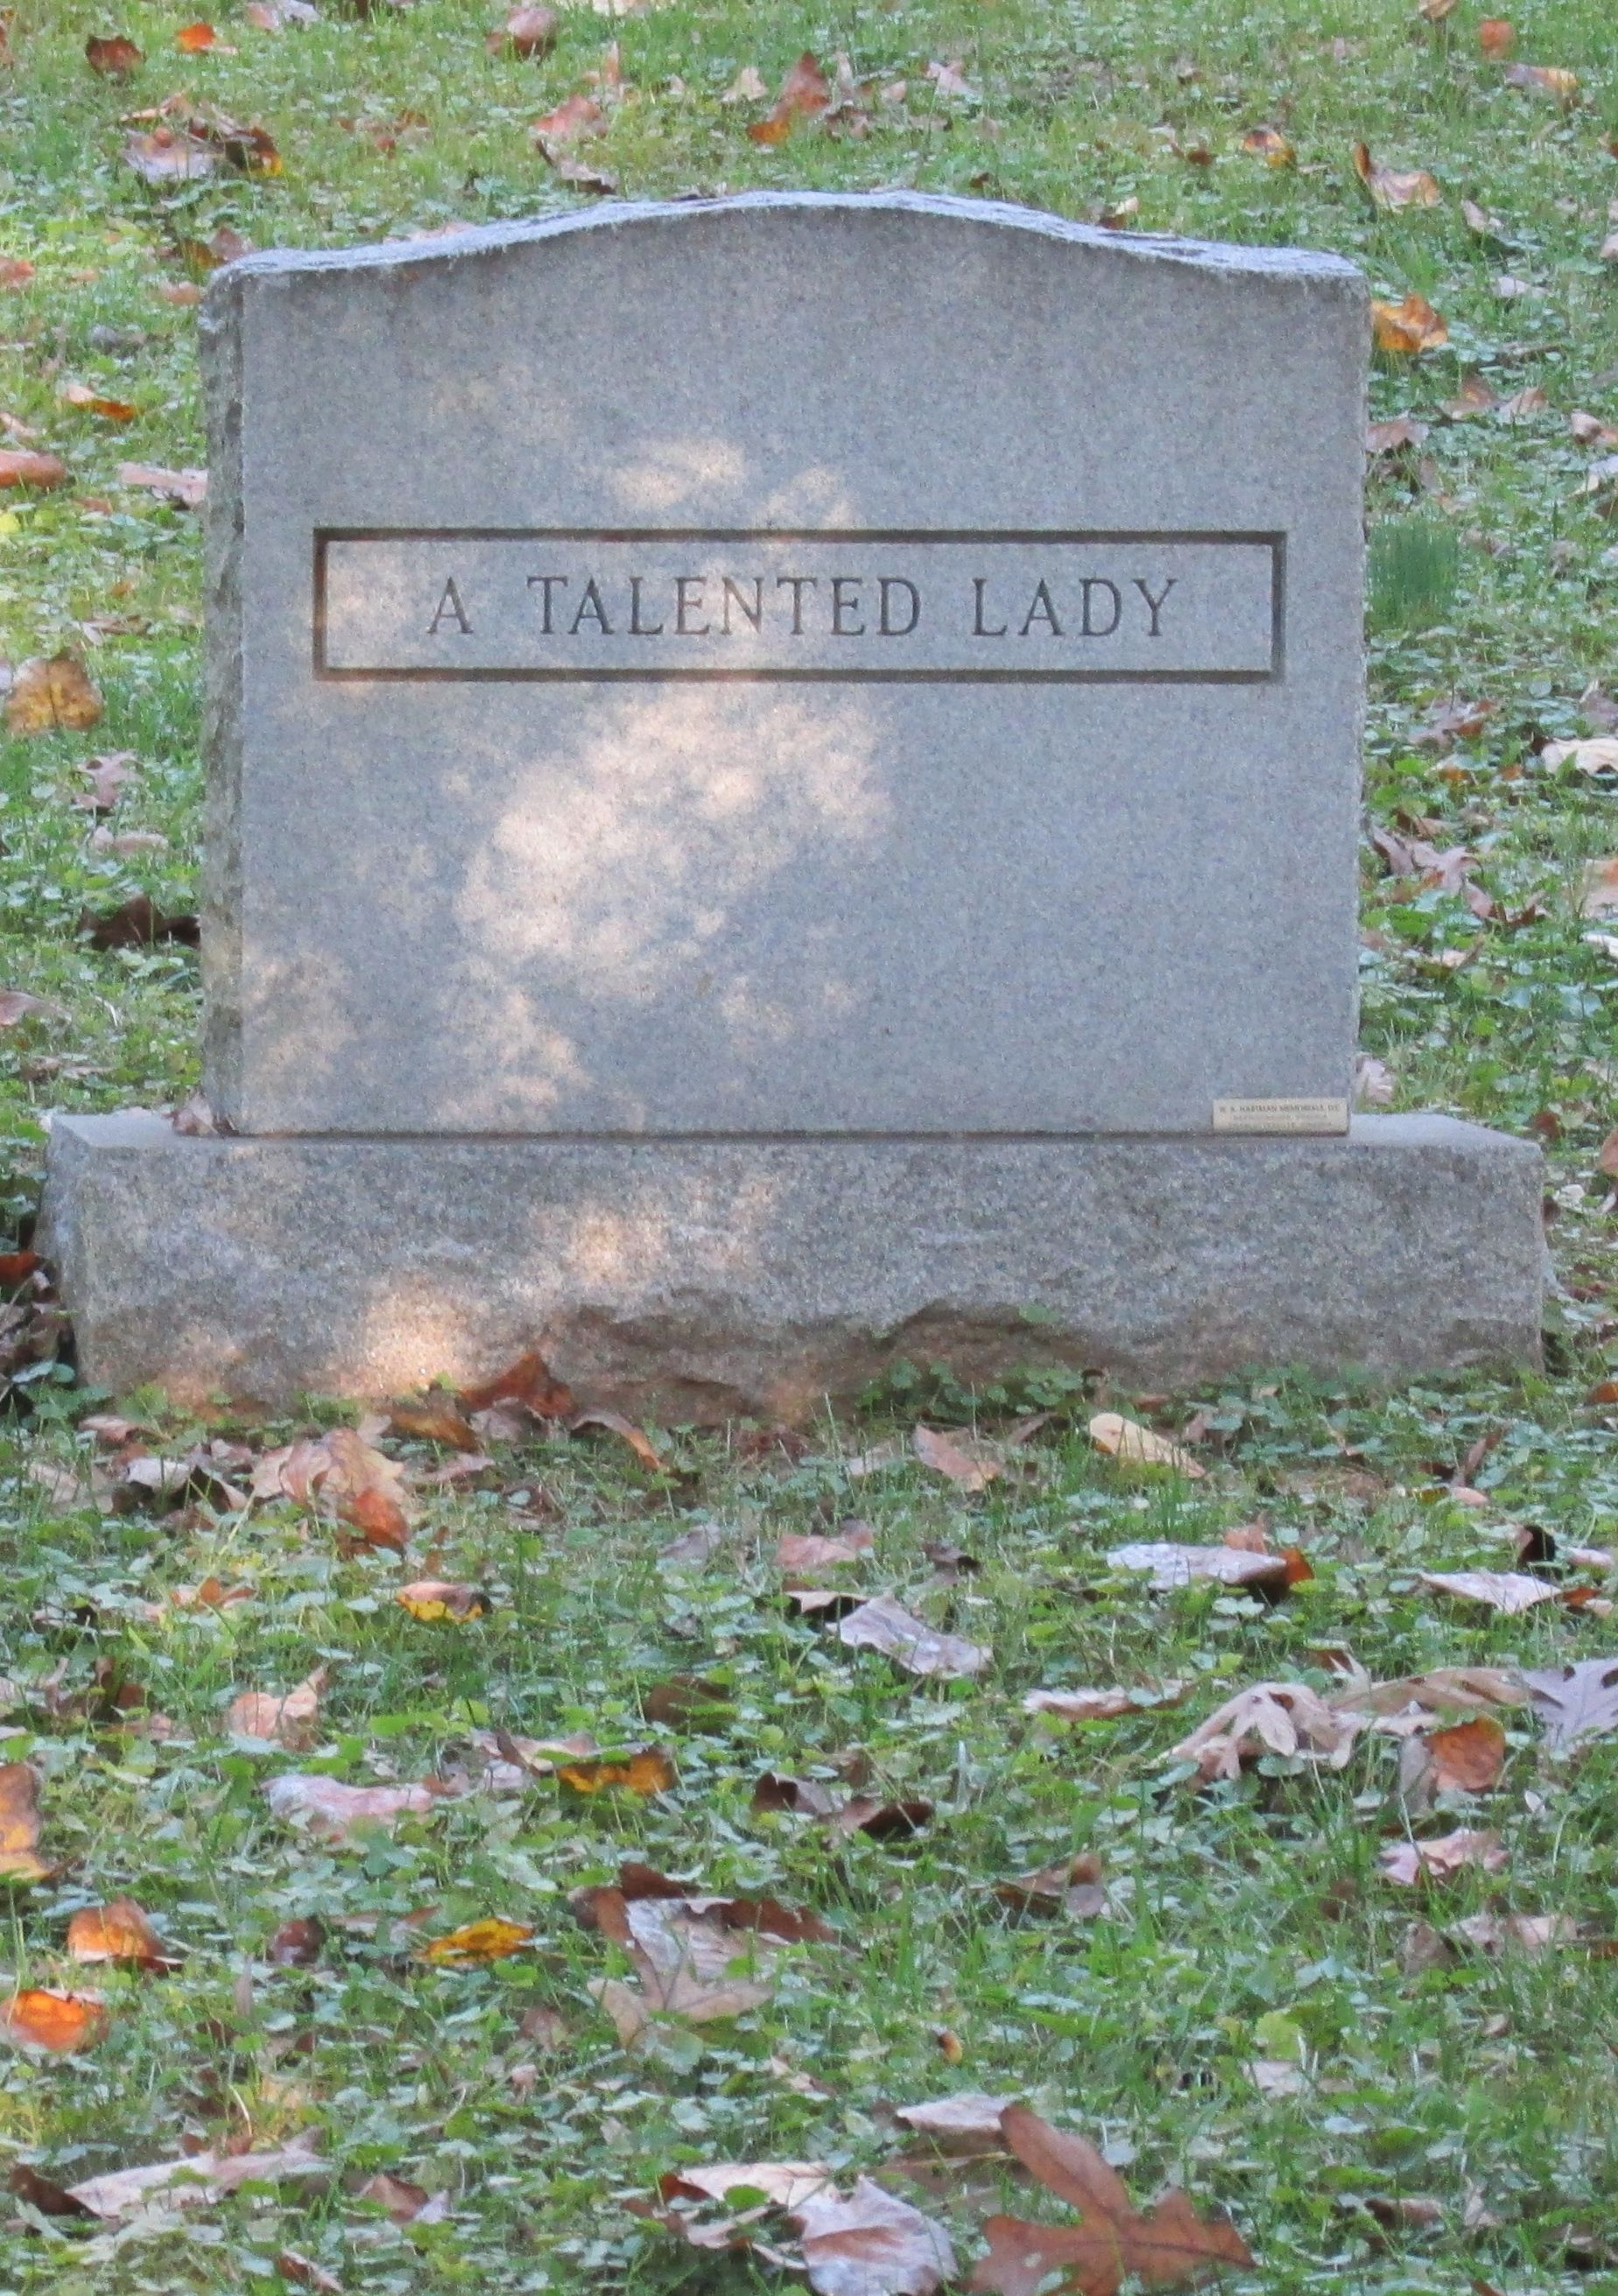 A talented lady headstone